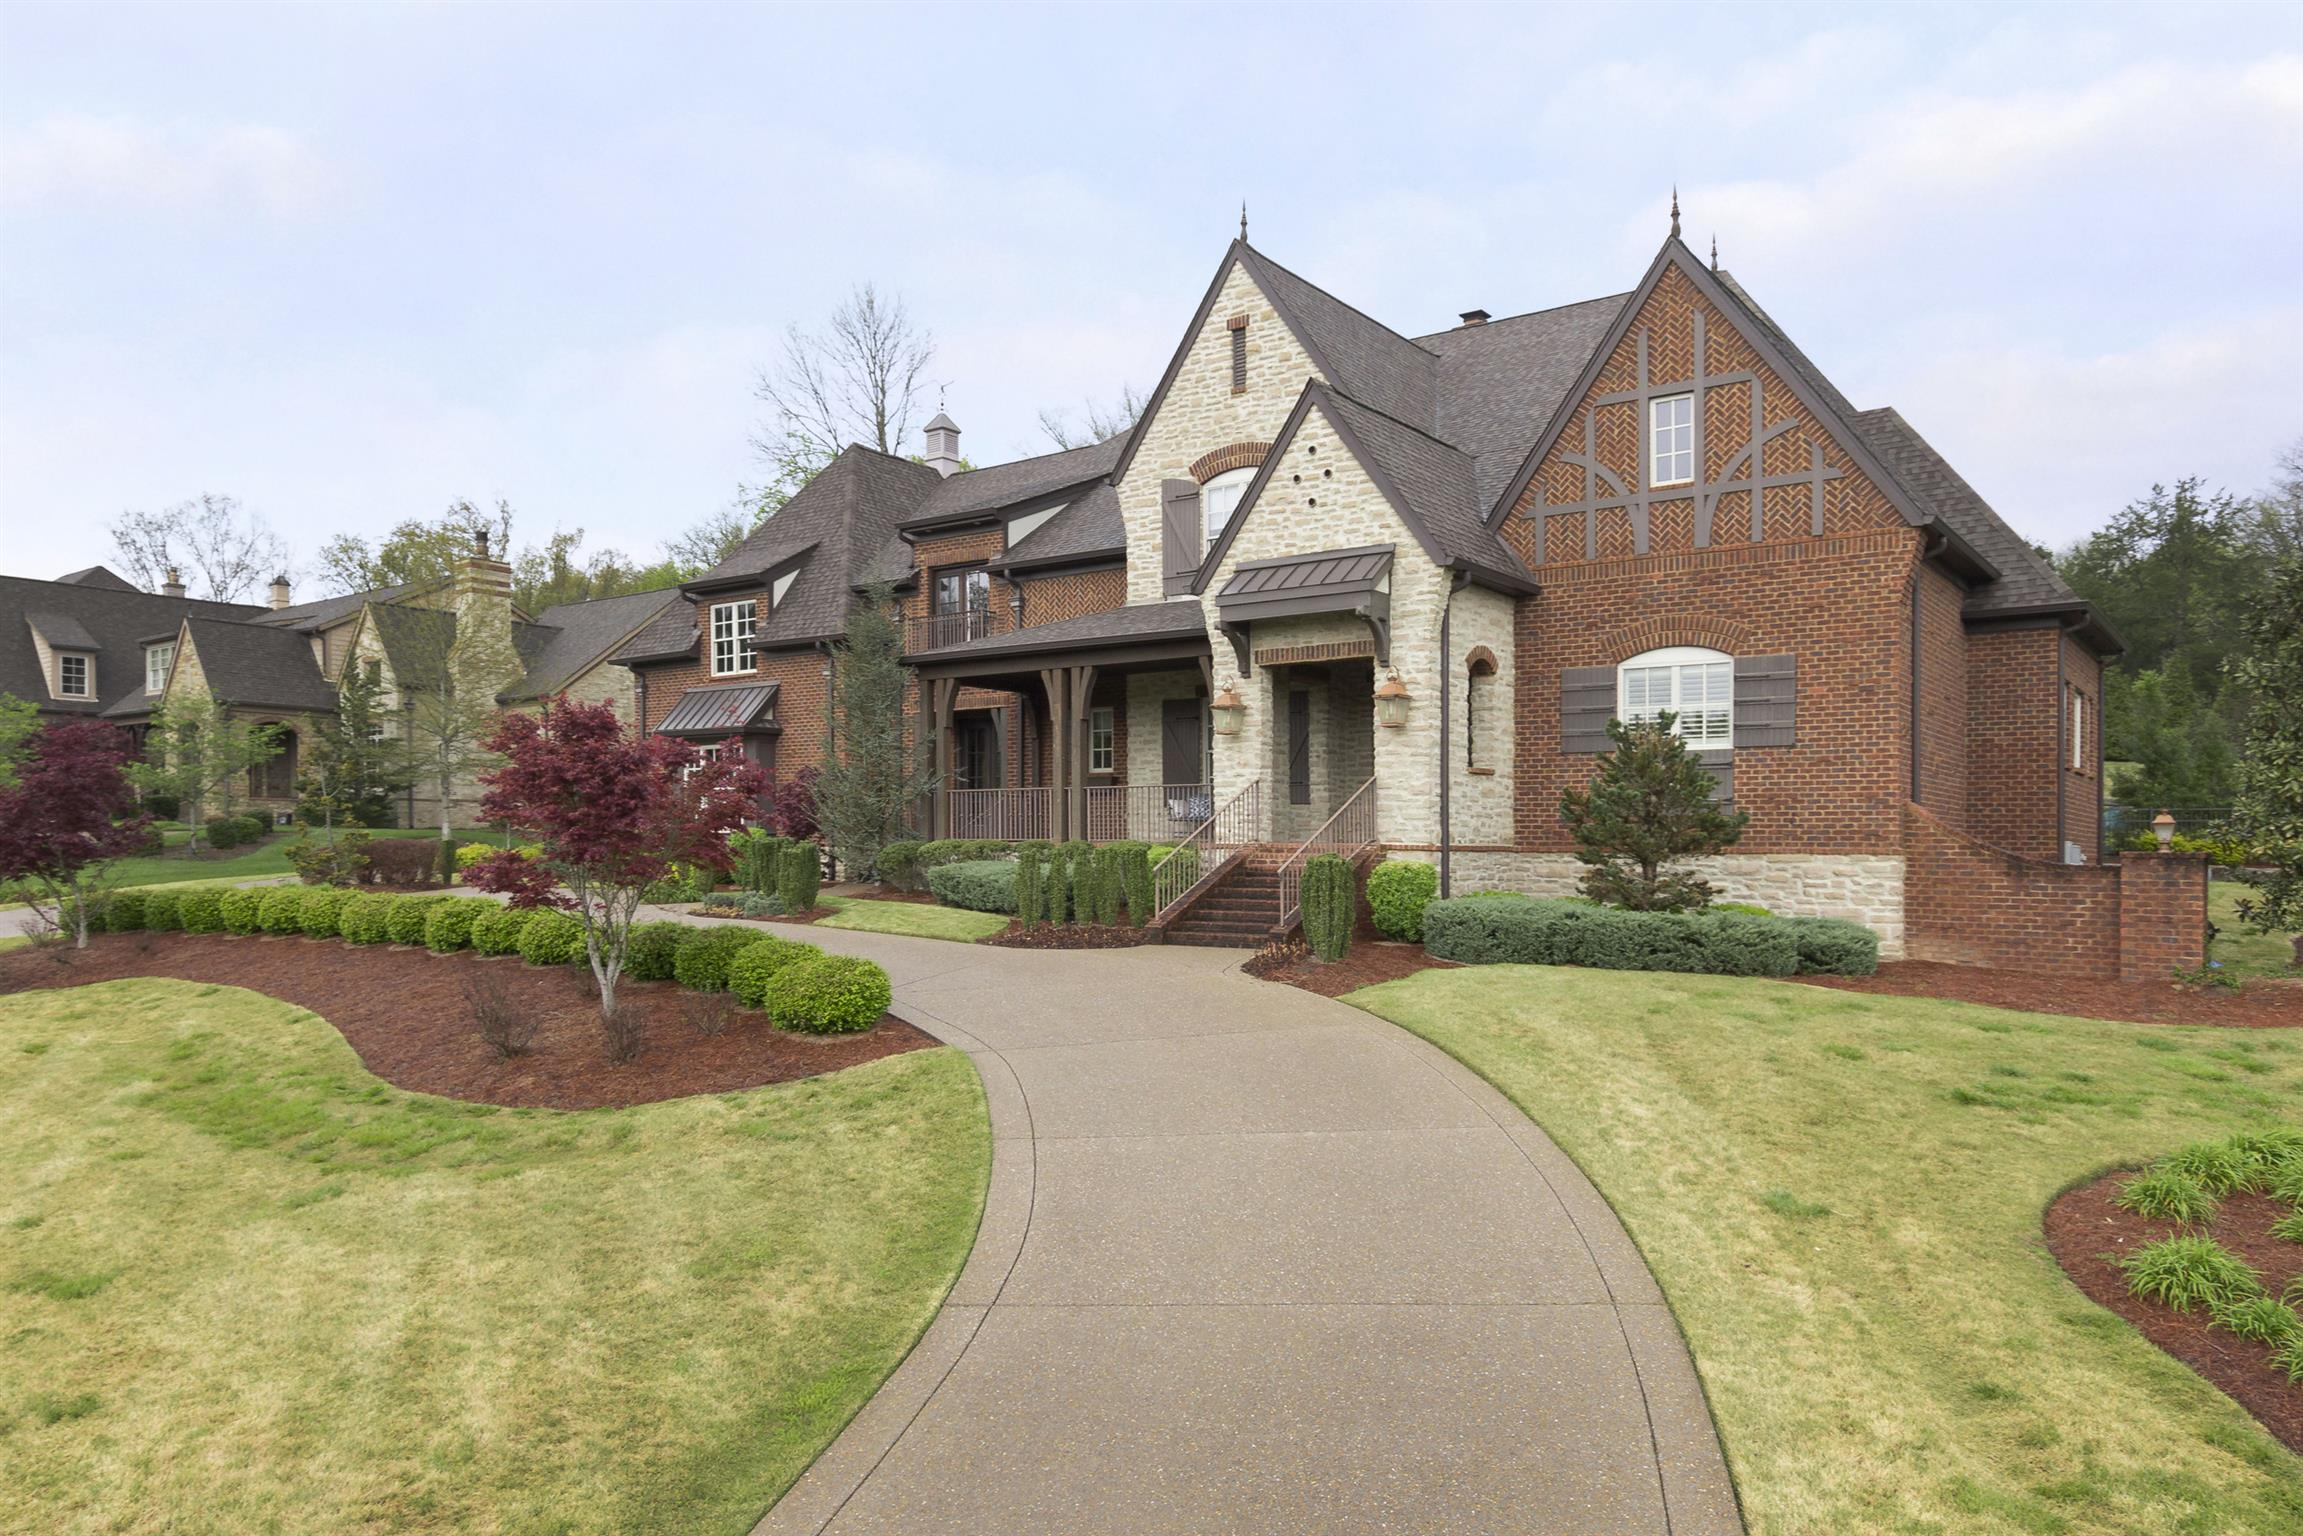 134 Bella Vista Dr, Goodlettsville in Sumner County County, TN 37072 Home for Sale